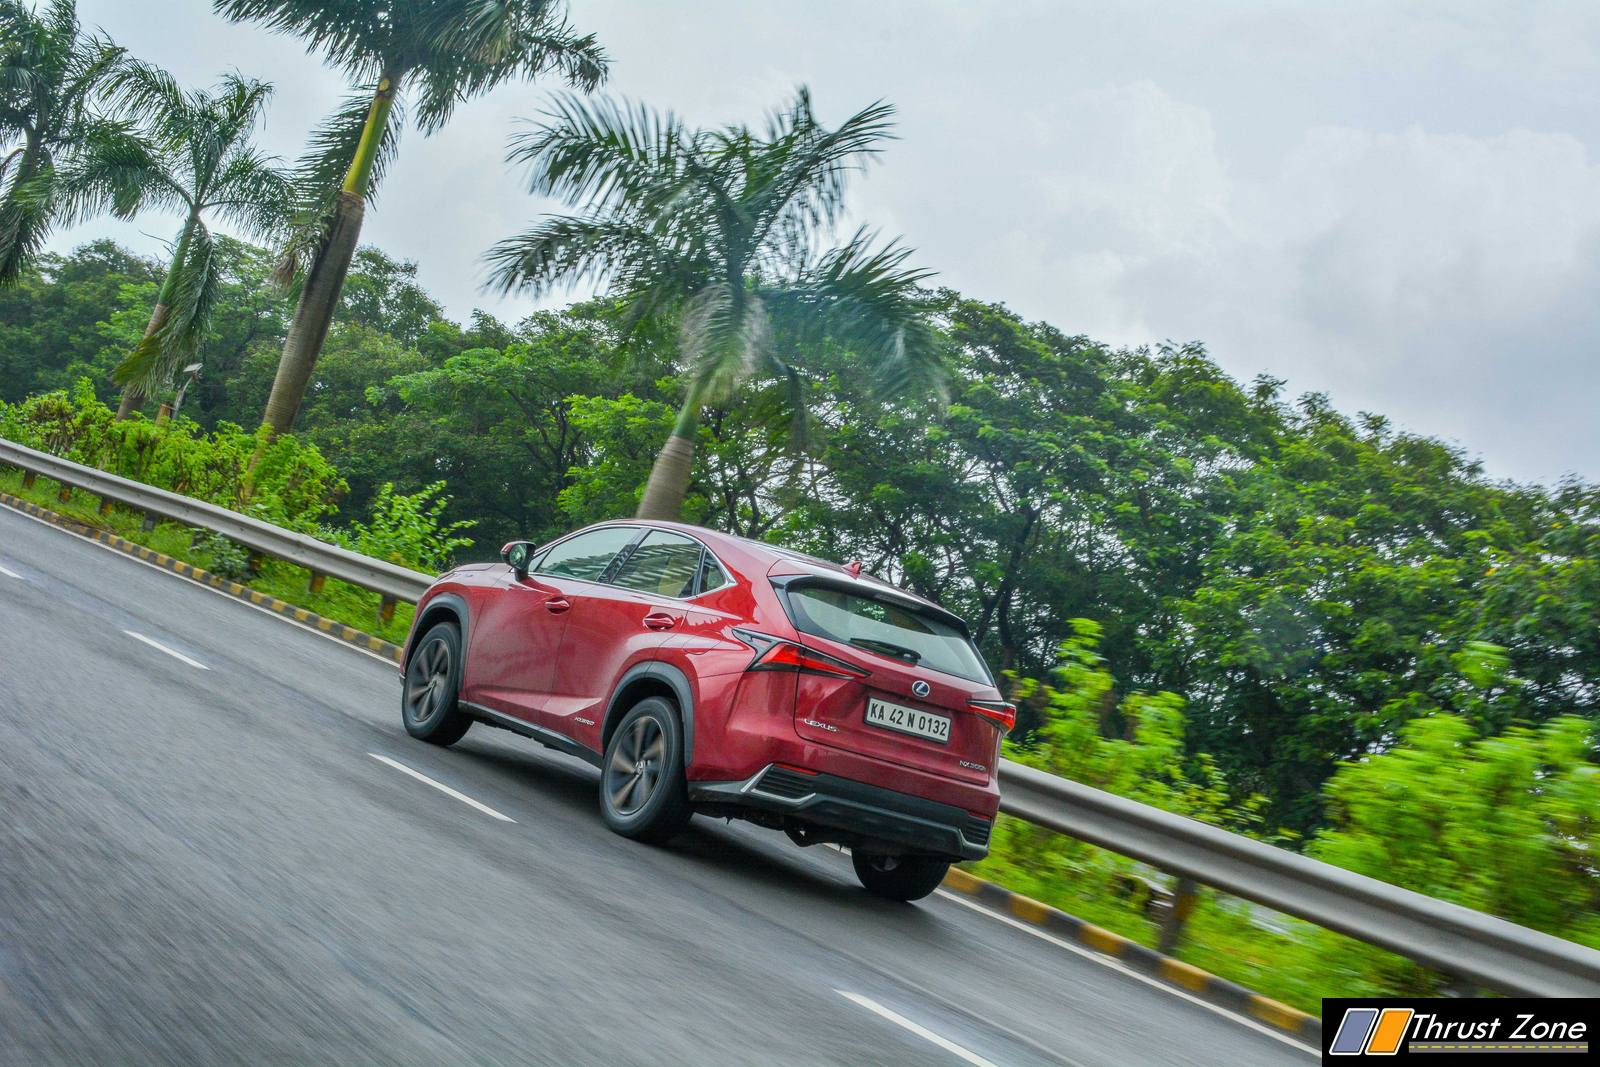 https://www.thrustzone.com/wp-content/uploads/2018/07/2018-Lexus-NX300h-India-Review-2.jpg